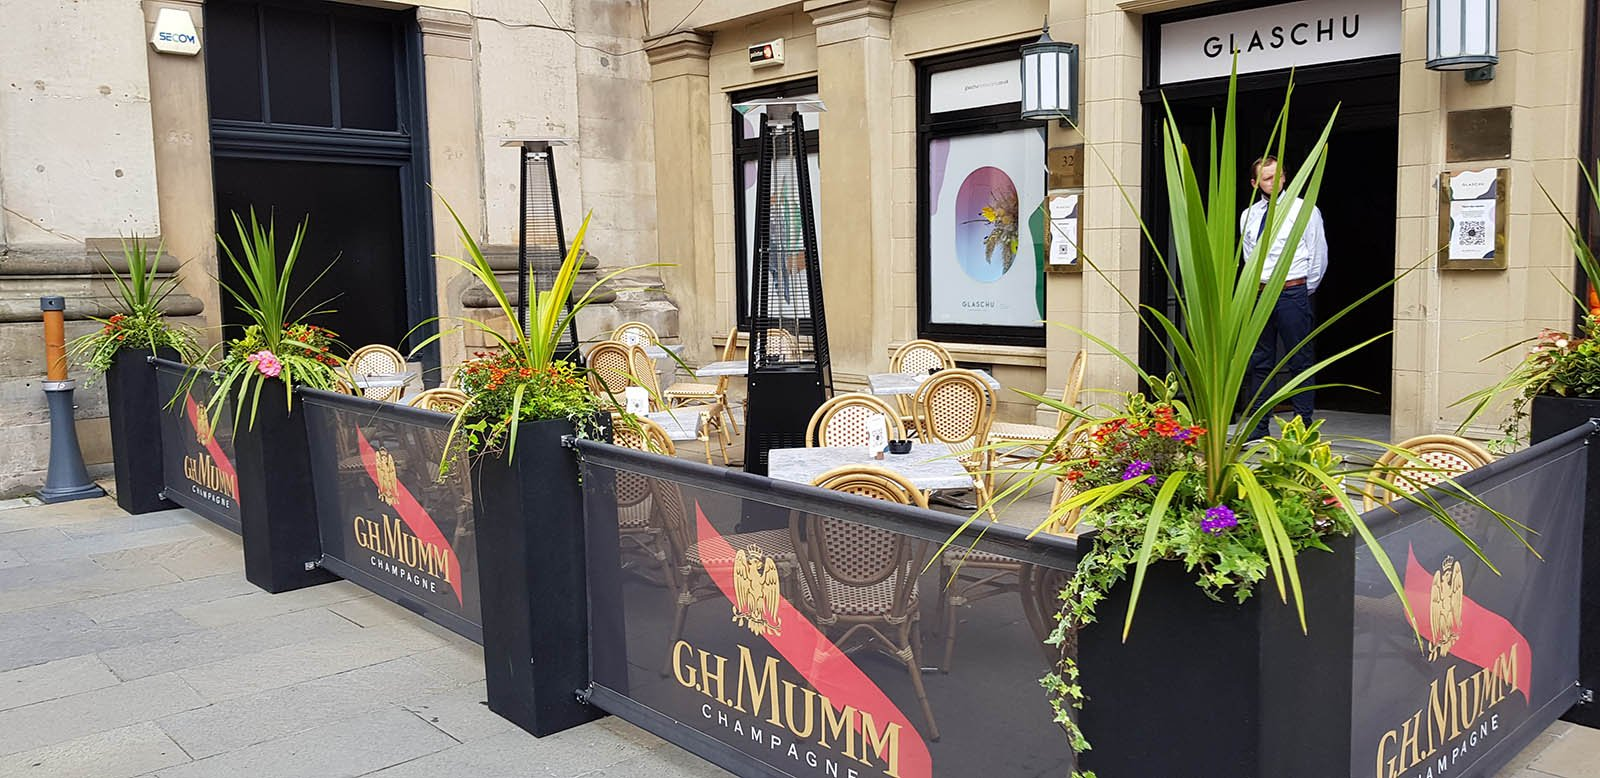 French style bistro pavement café outdoor dining at Glaschu in Glasgow with lush planters and bespoke branded banners